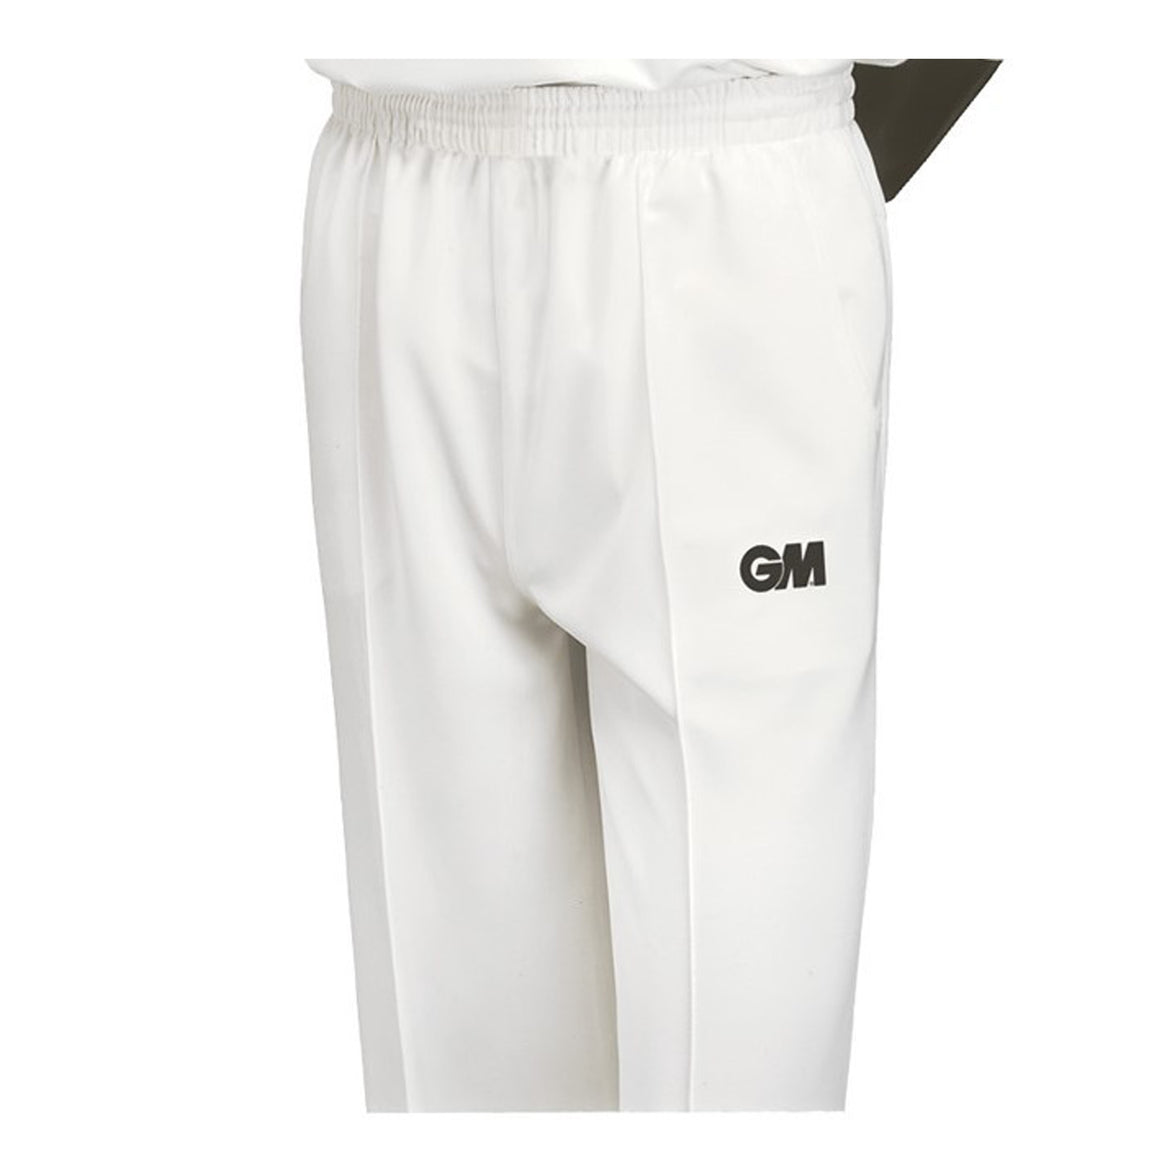 Maestro Cricket Trousers for Kids in Ivory